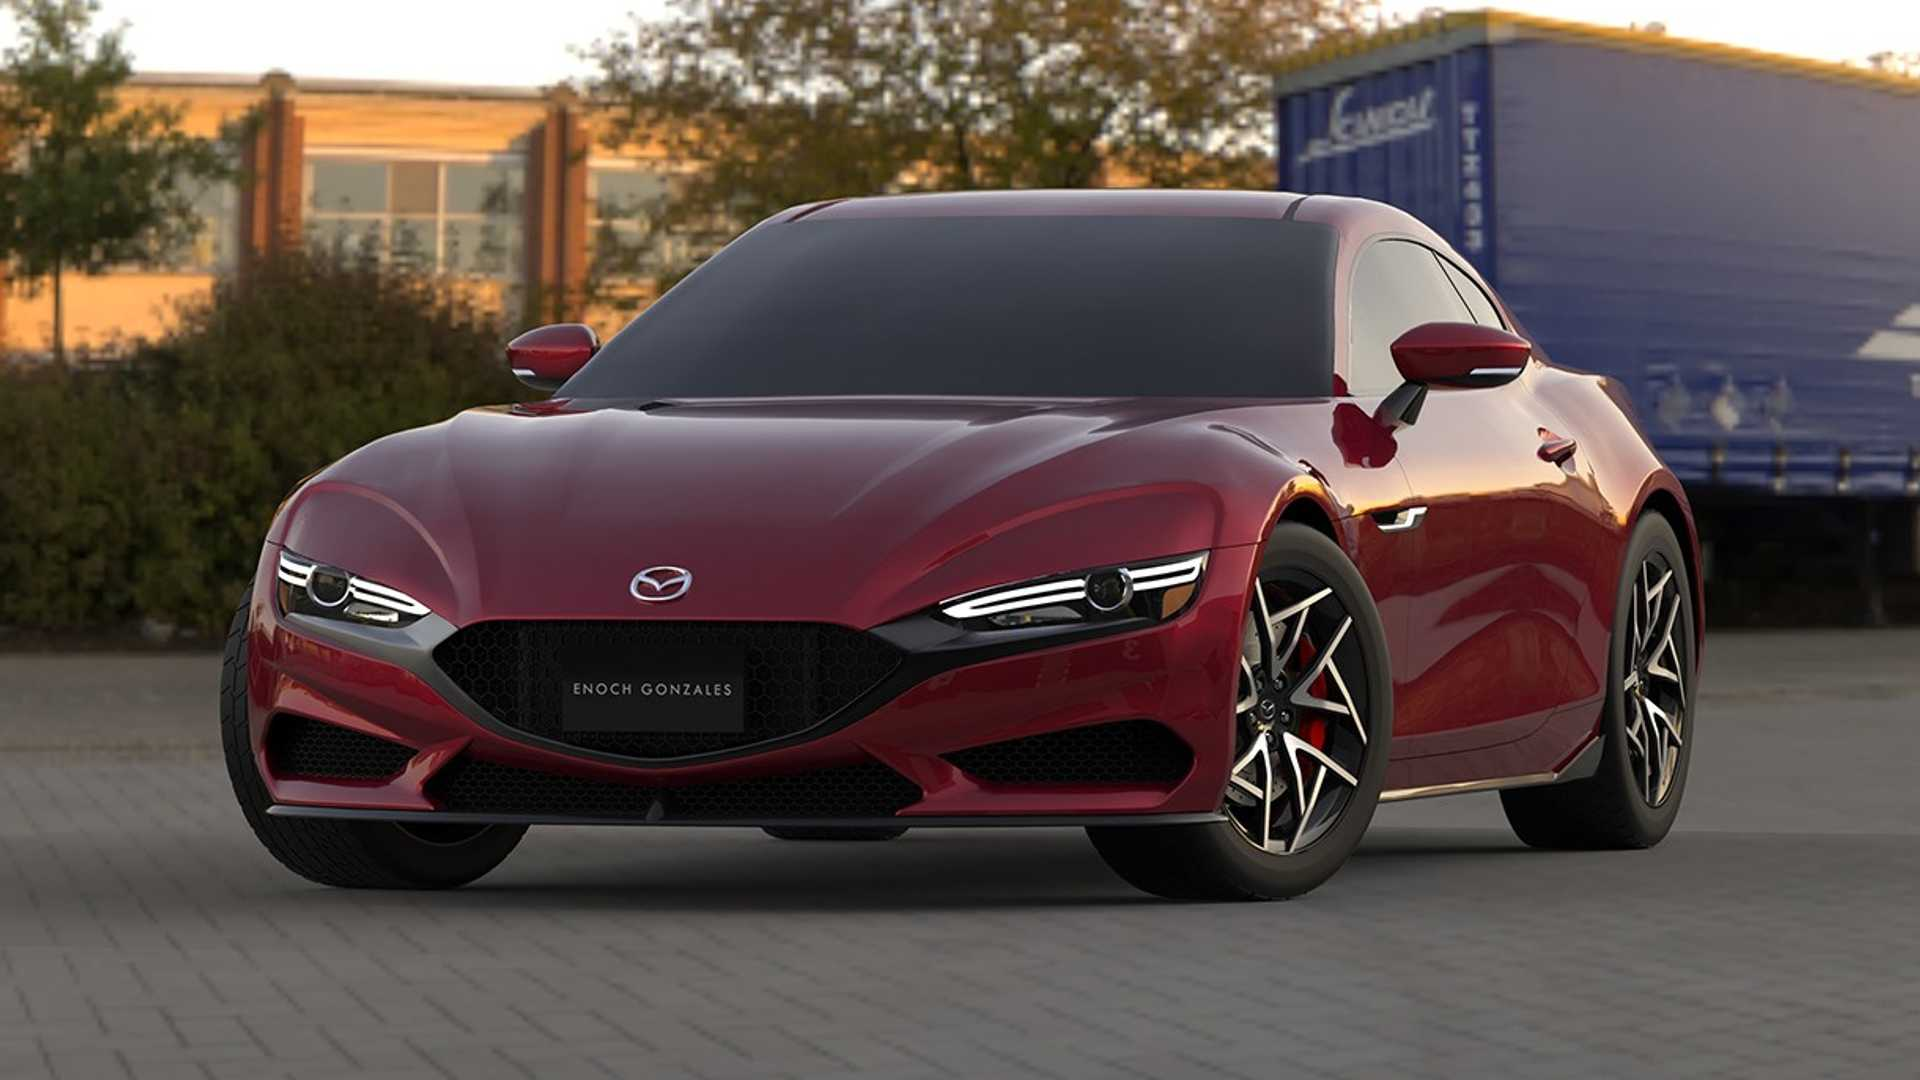 2020 Mazda RX7s Price and Review